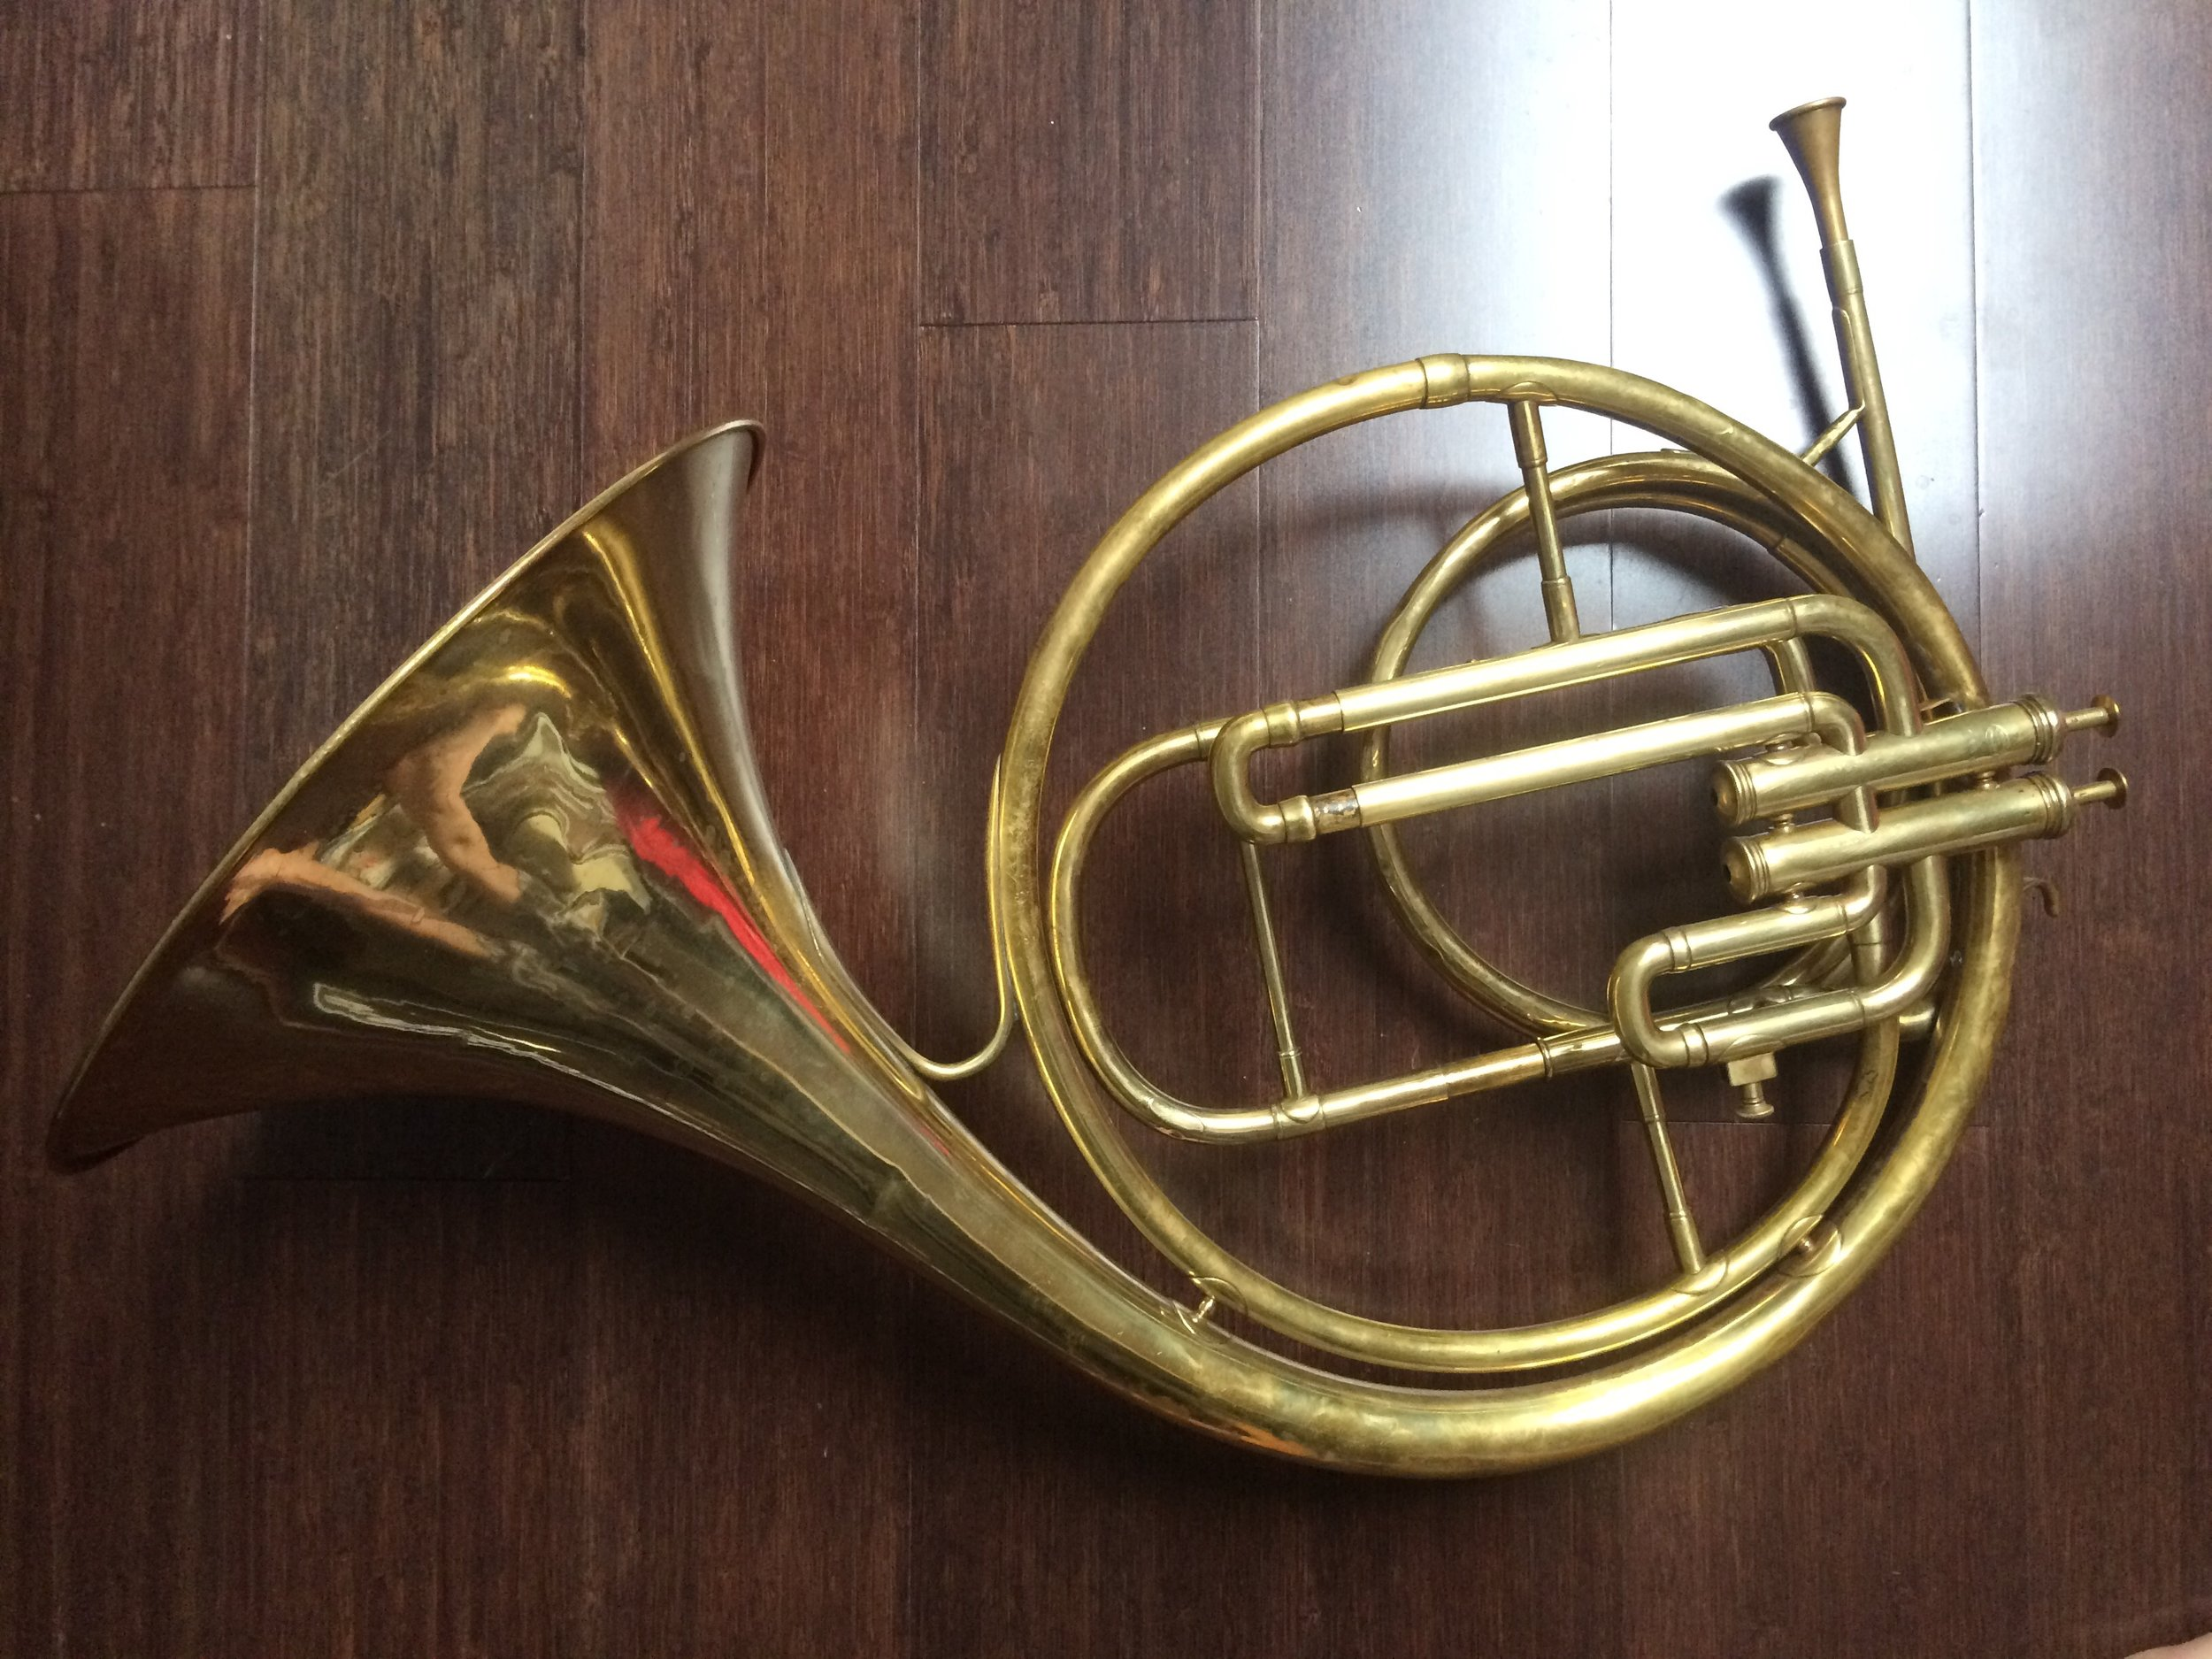 Piston horn : two valve instrument by Besson  (on loan from Chris Larkin).